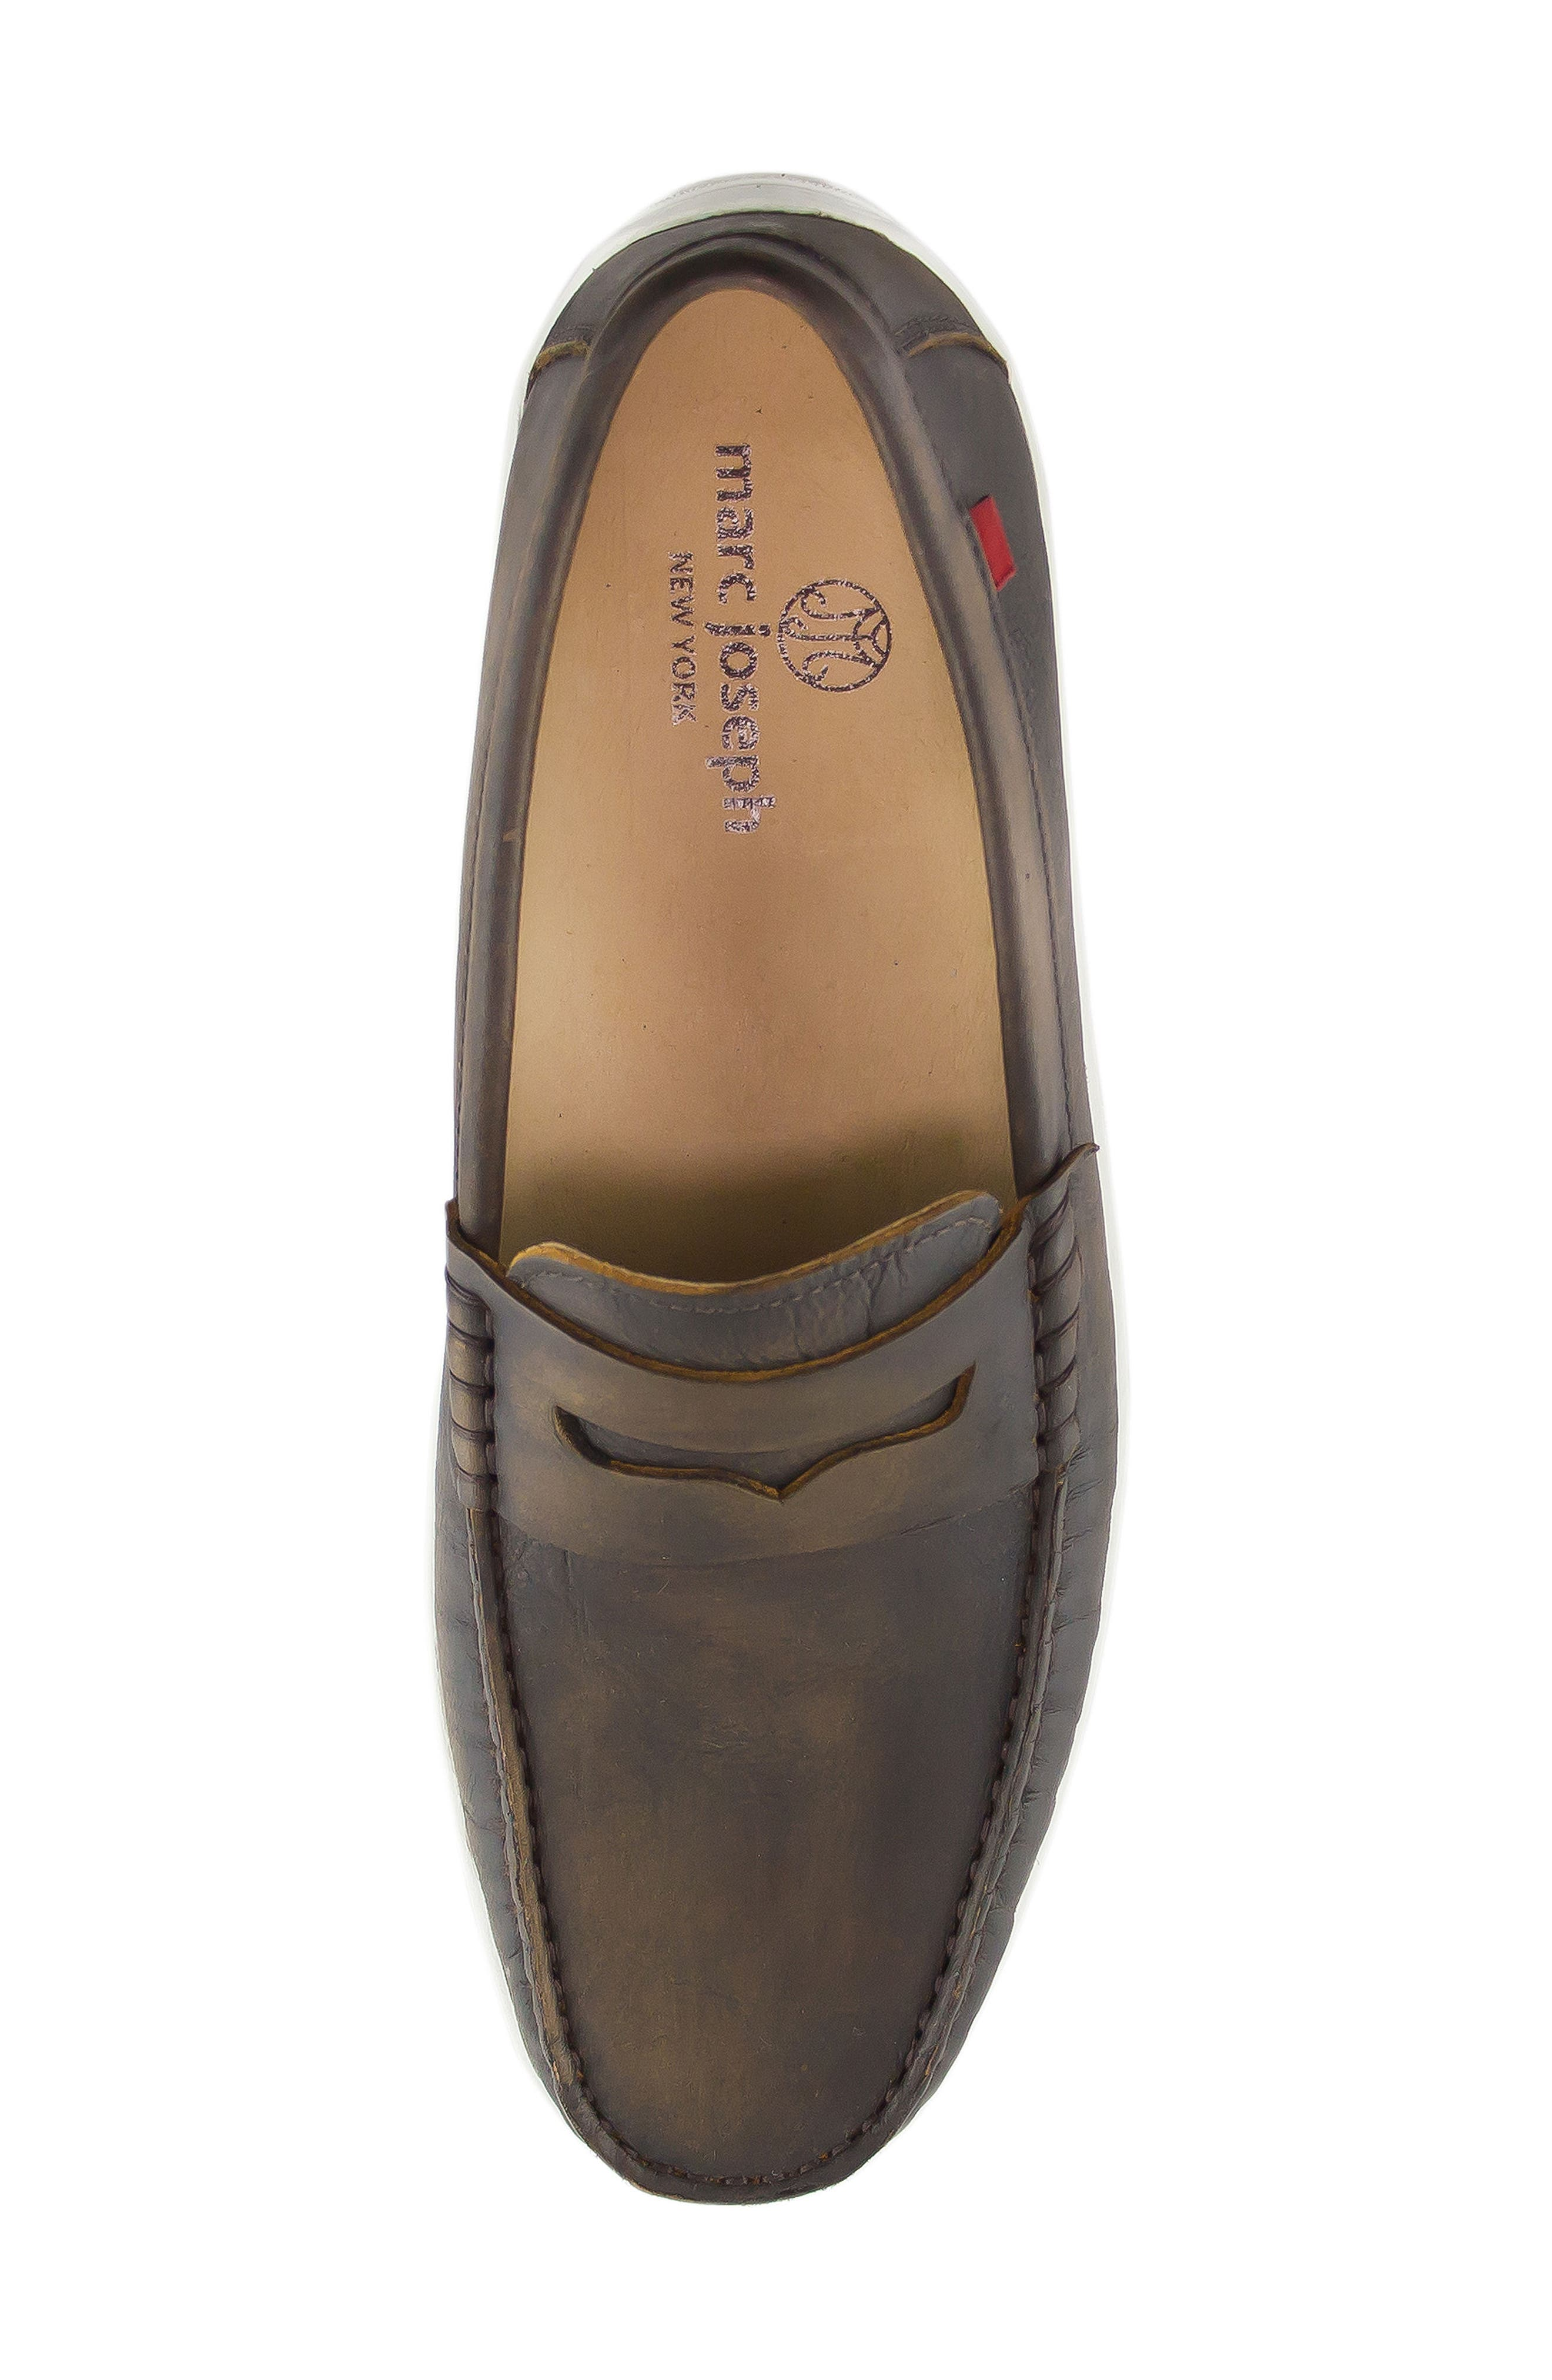 Atlantic Penny Loafer,                             Alternate thumbnail 4, color,                             206